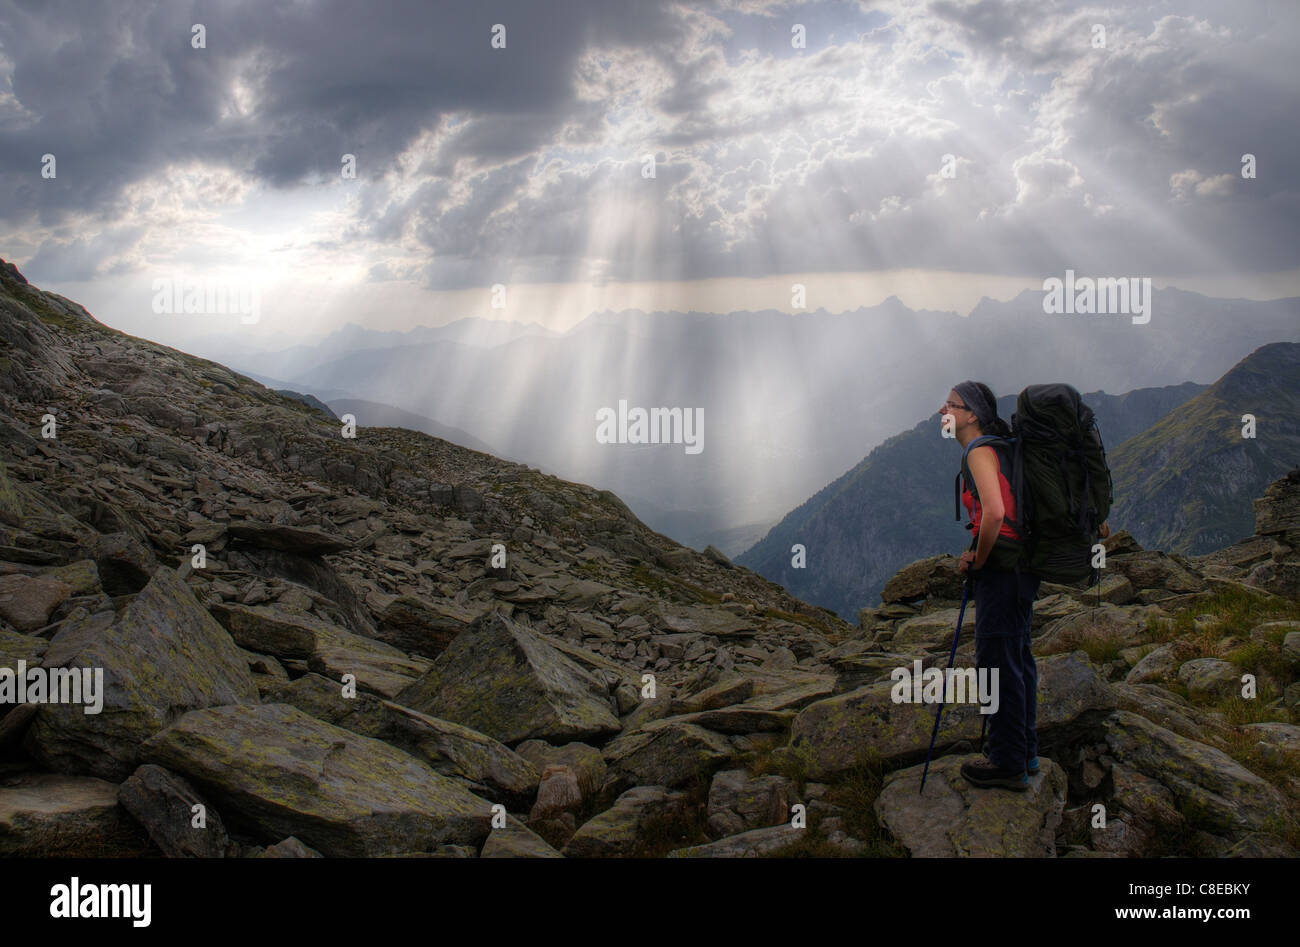 A mountain walker pauses with dramatic sun rays falling from the clouds - Stock Image